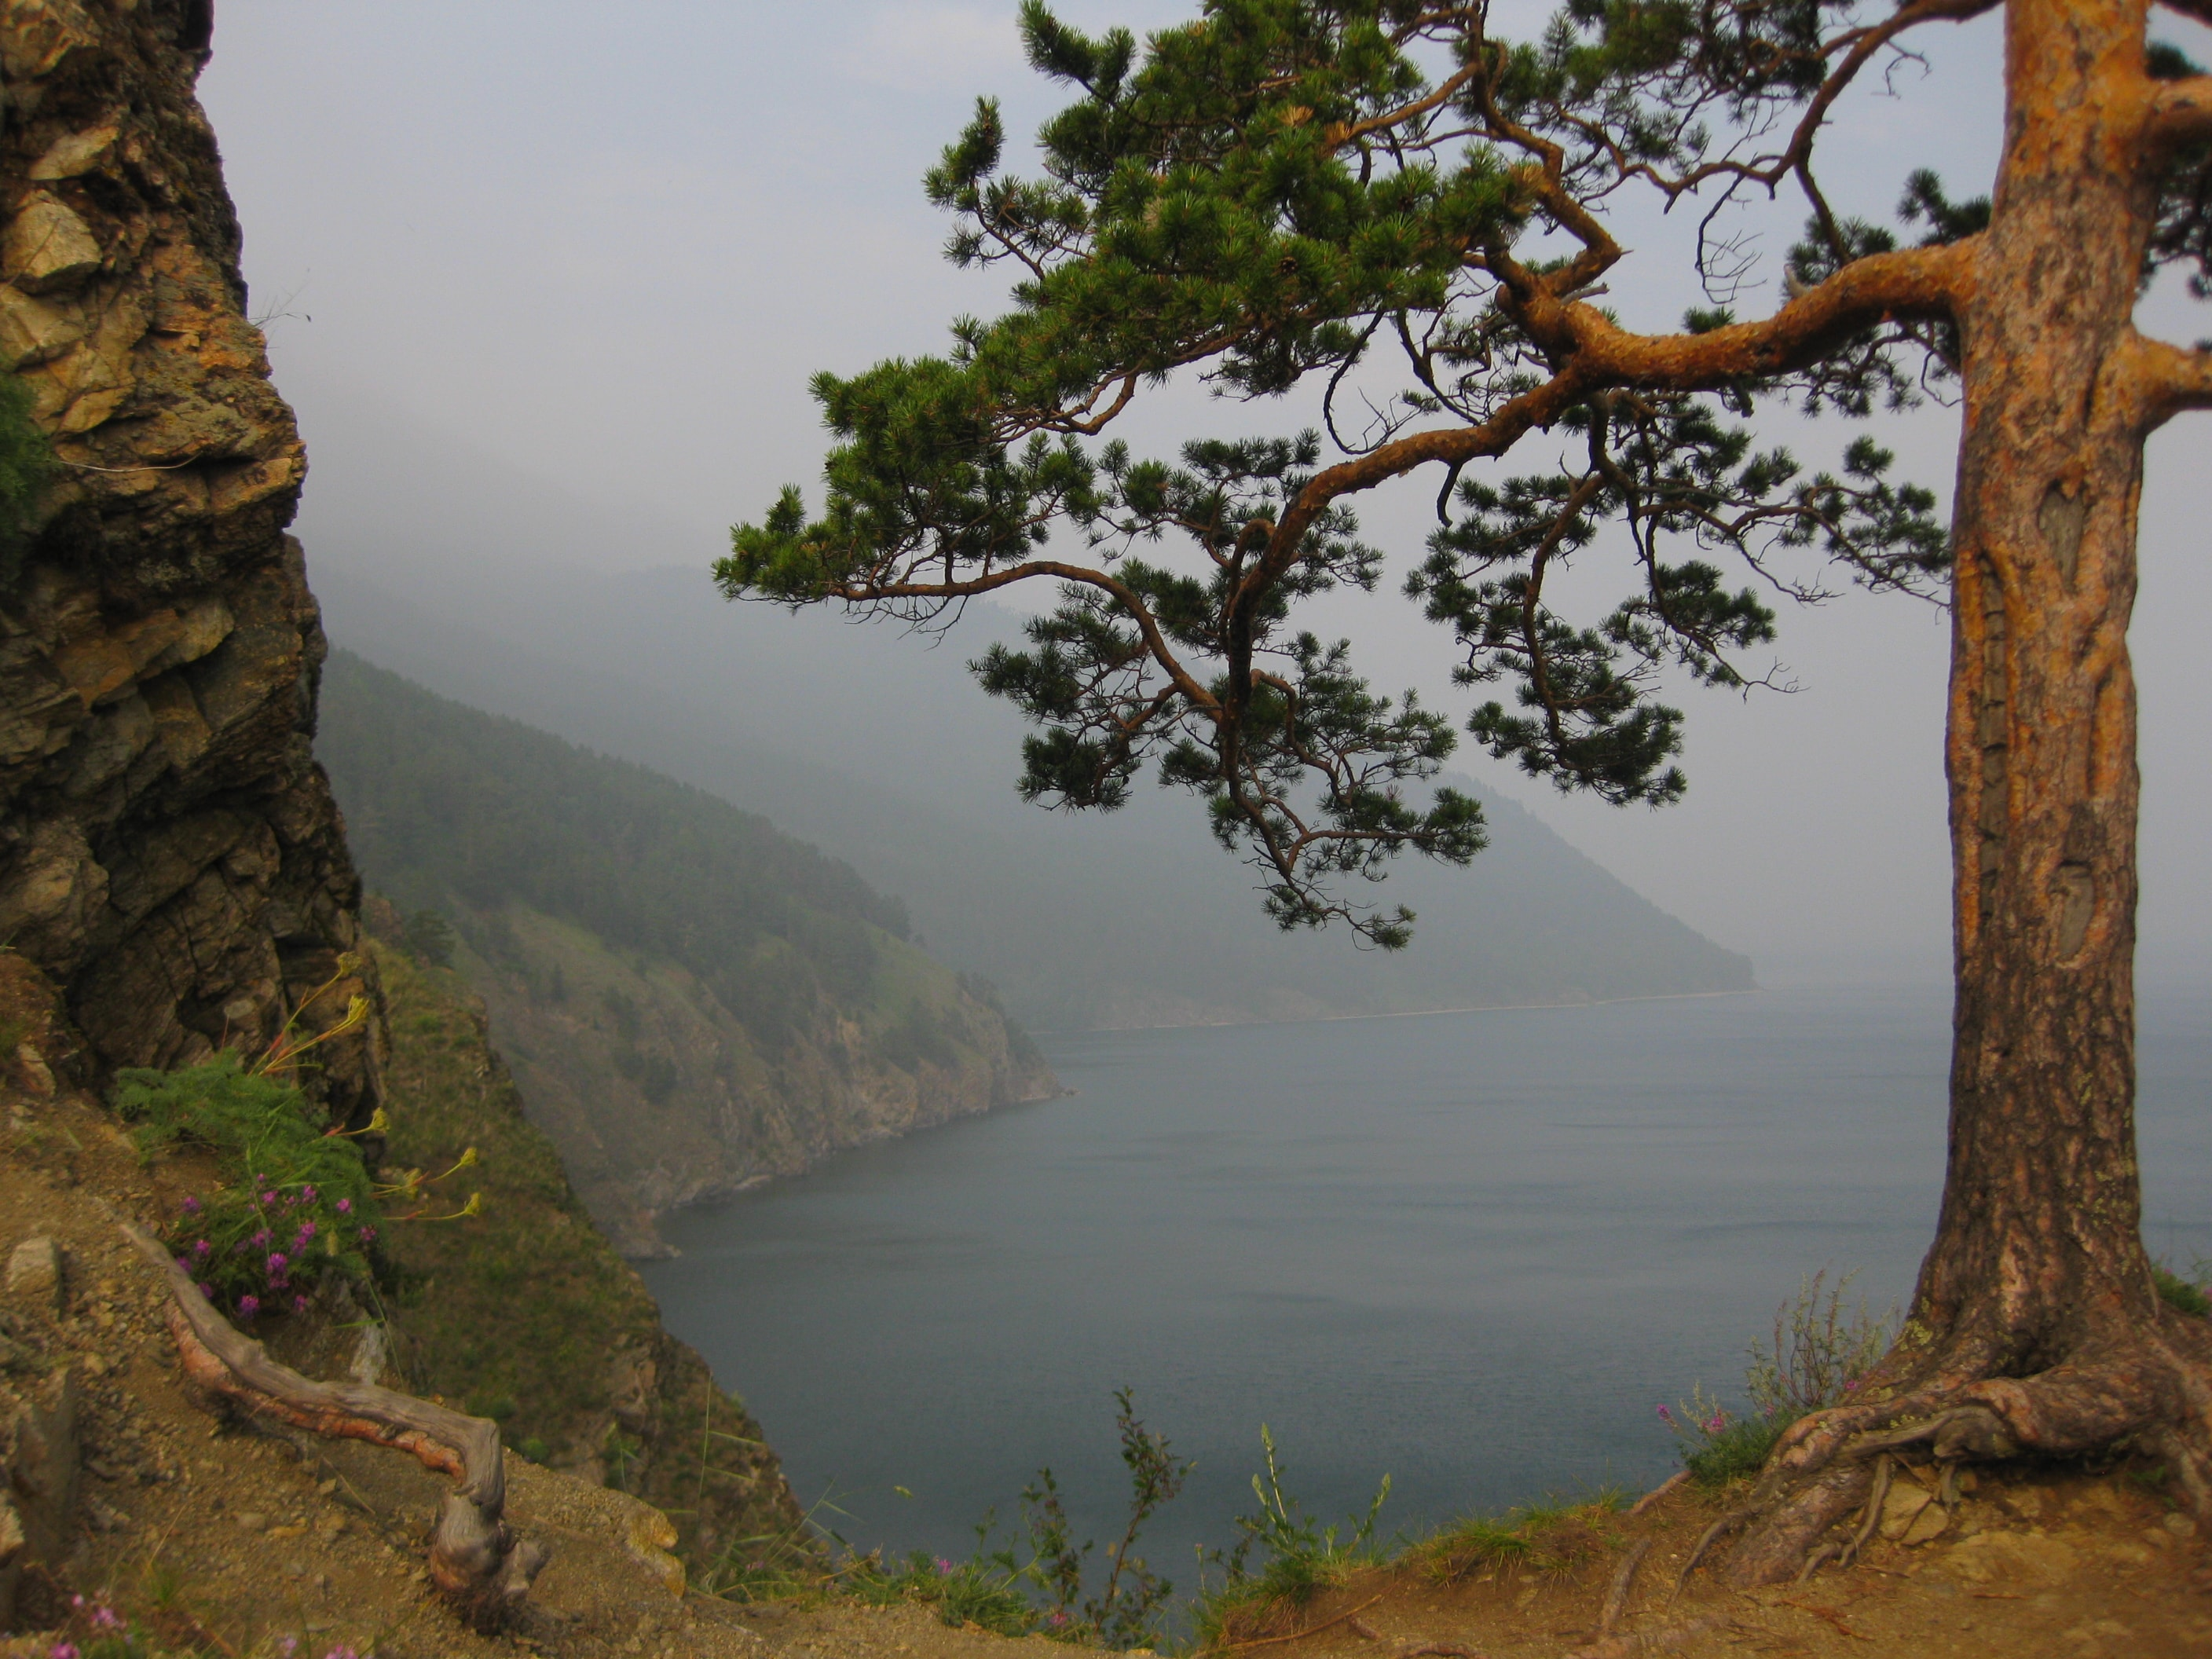 On the way to the Big Cats - Rest on Lake Baikal